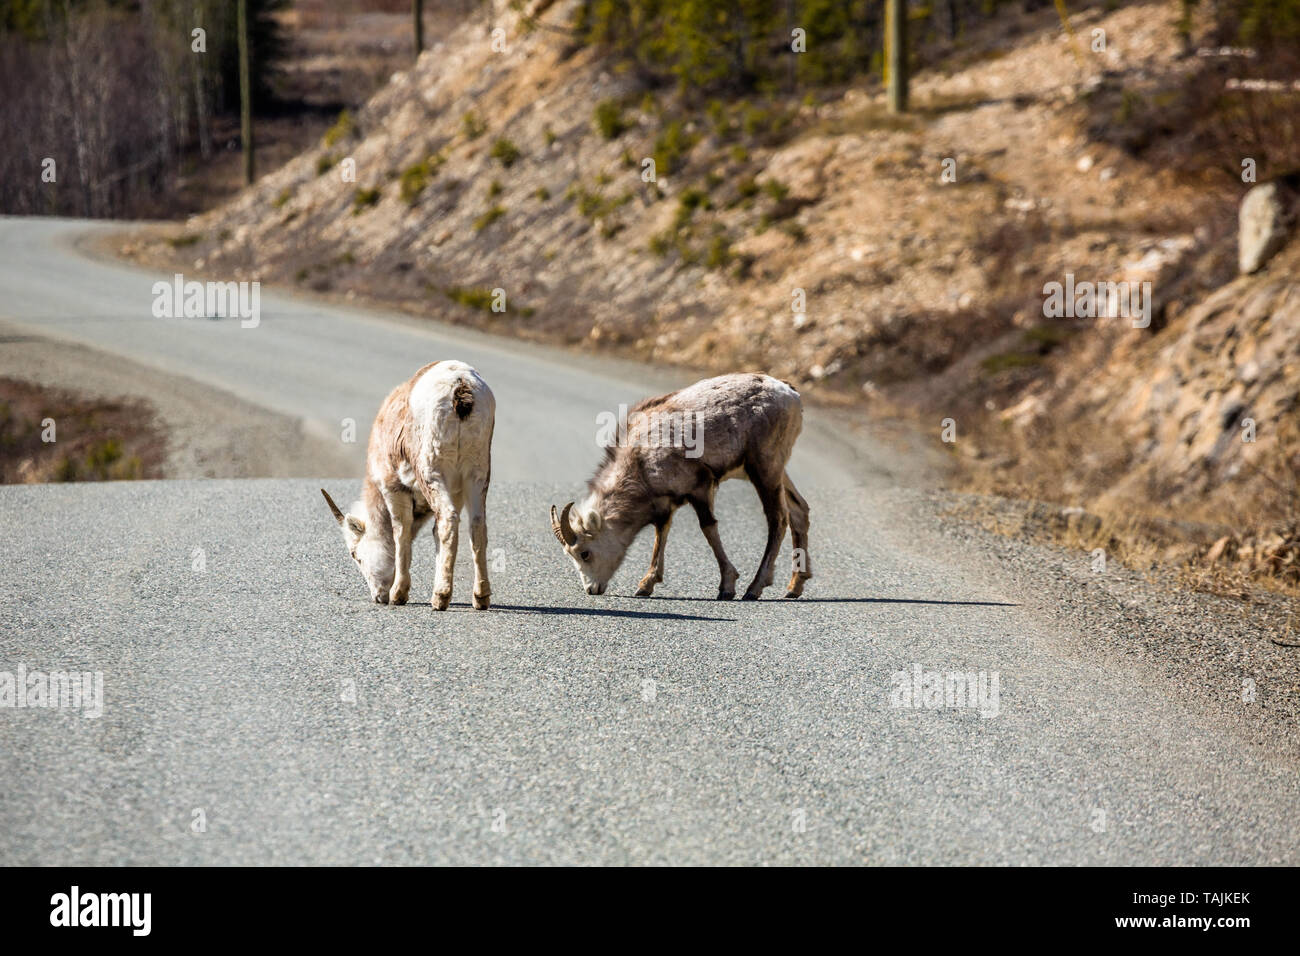 Two young Stone Sheep or Dall Sheep lick mineral deposits from the Cassiar Highway near the Alaska Highway Junction in the Yukon, Canada. Stock Photo